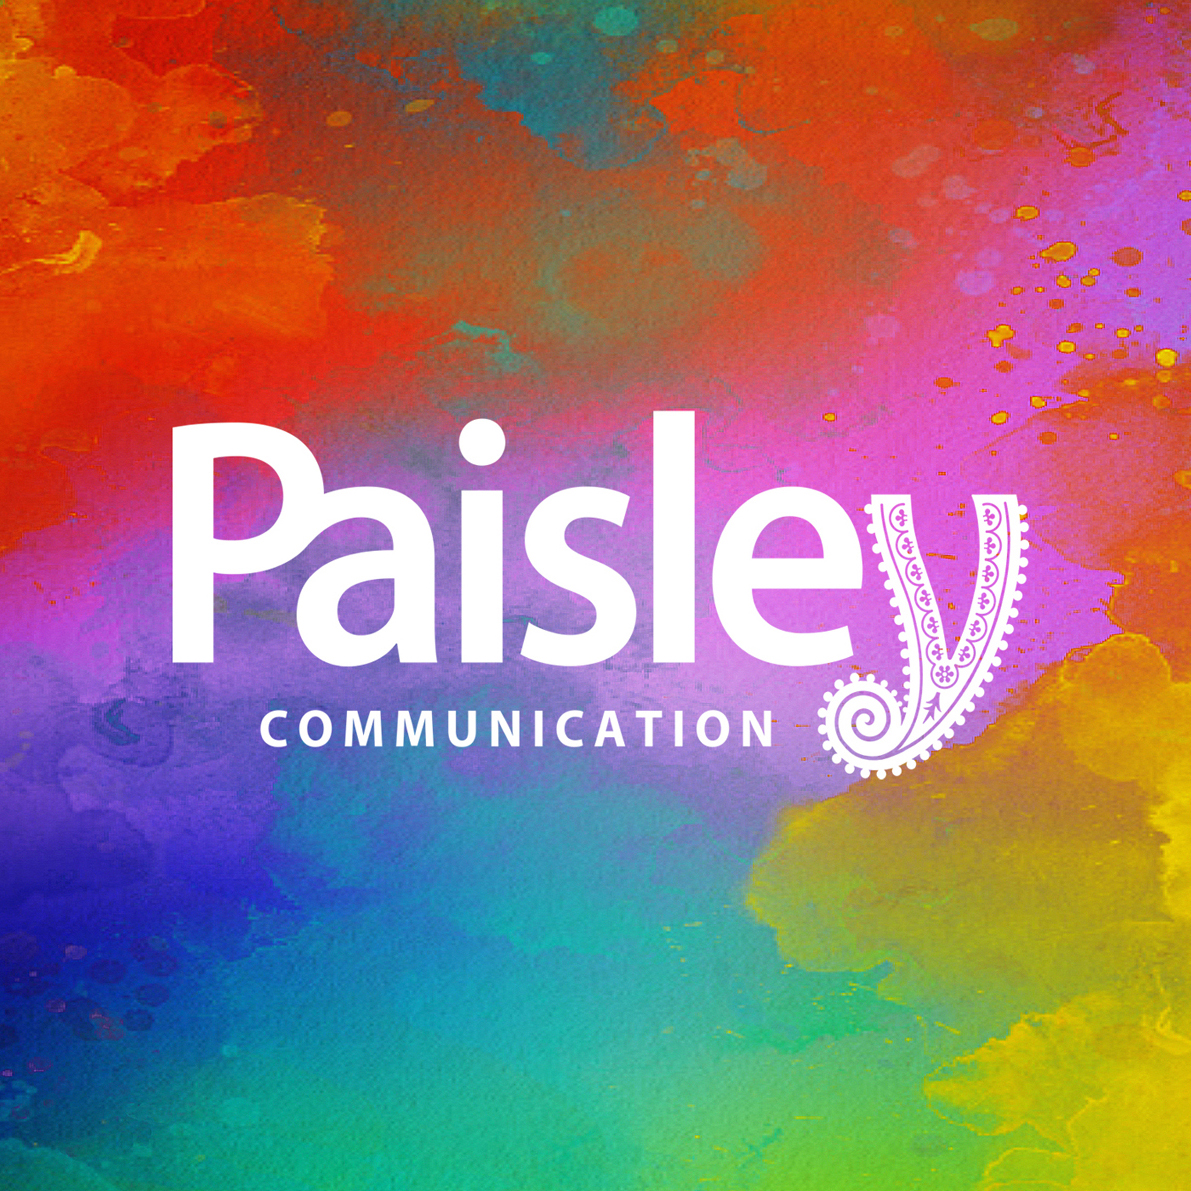 Paisley Communication logo design by logo designer Karl Design Vienna for your inspiration and for the worlds largest logo competition